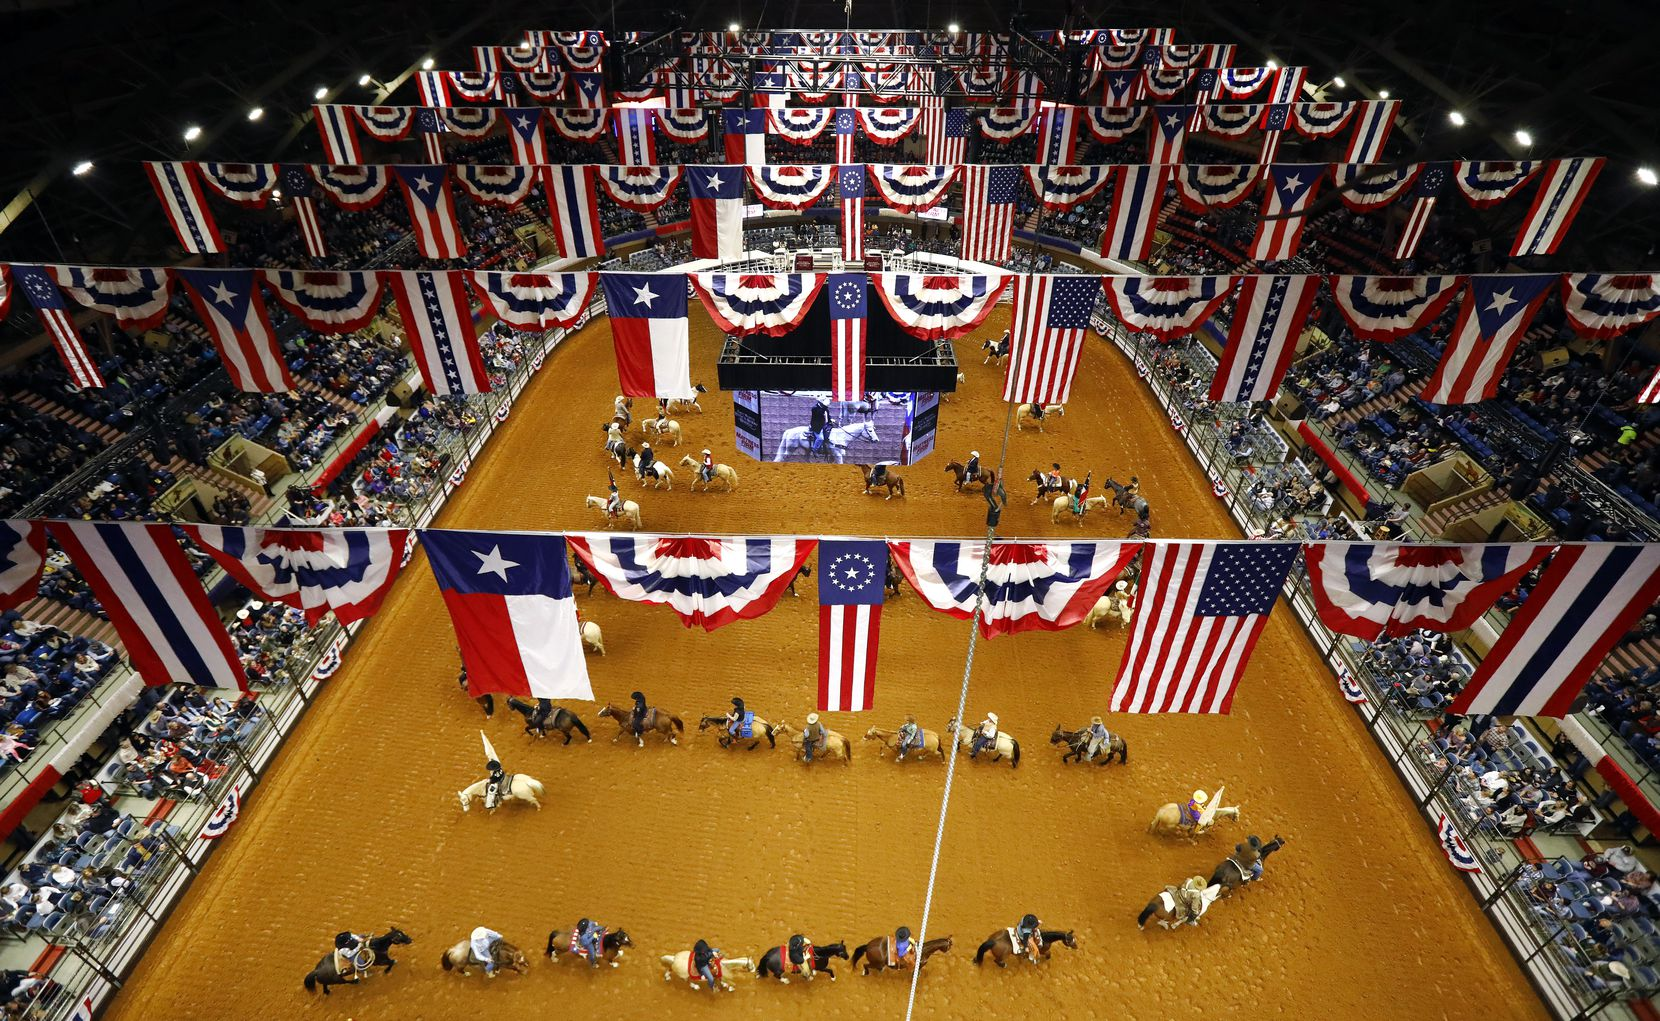 Fprt Worth Stock Show and Rodeo officials, dignitaries, and participants on horseback form a serpentine line during the Grand Entry on Feb. 1 at Will Rogers Memorial Coliseum,. The entry, which kicks of the PRCA rodeo, is a longtime tradition, dating back to the beginning in 1918. The rodeo is moving to the  new Dickies Arena in 2020.